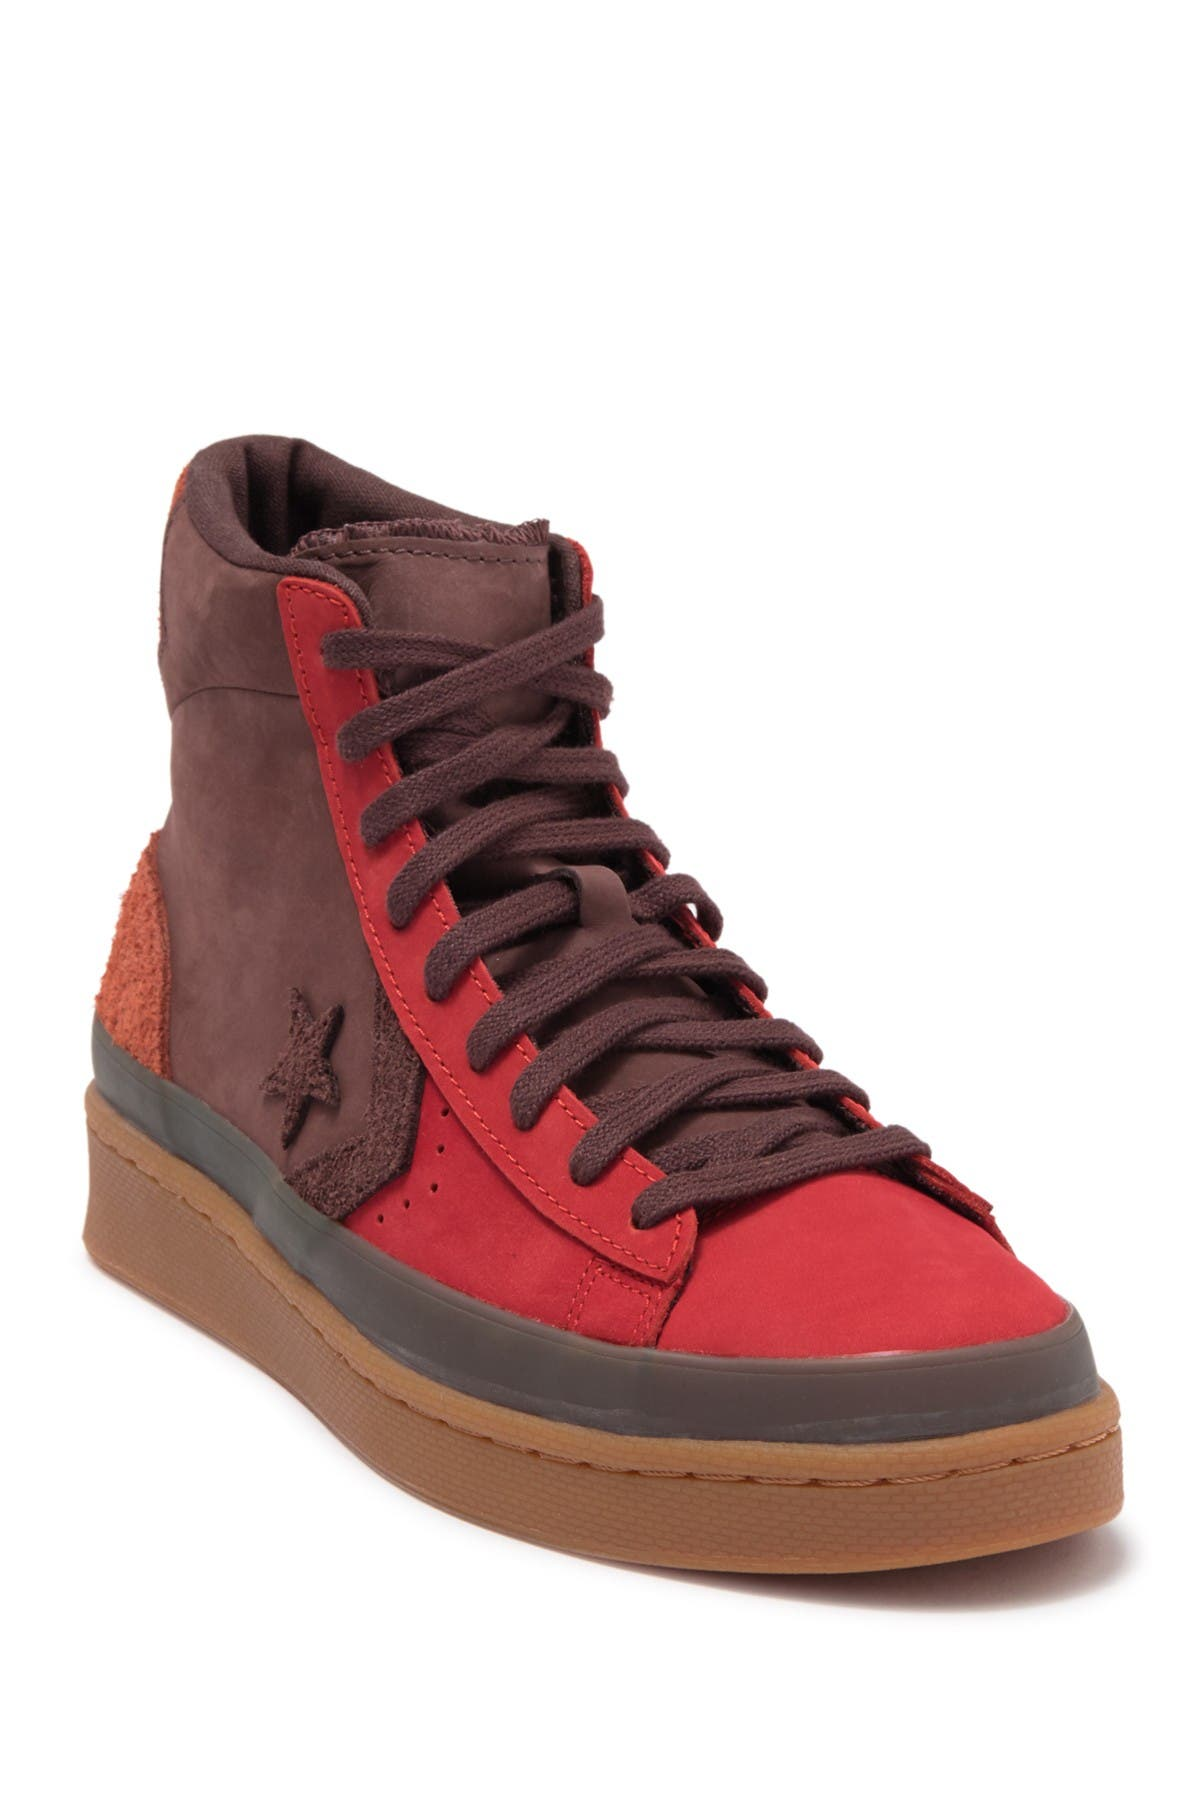 Image of Converse Pro Leather High Fiery Scarlet Sneaker